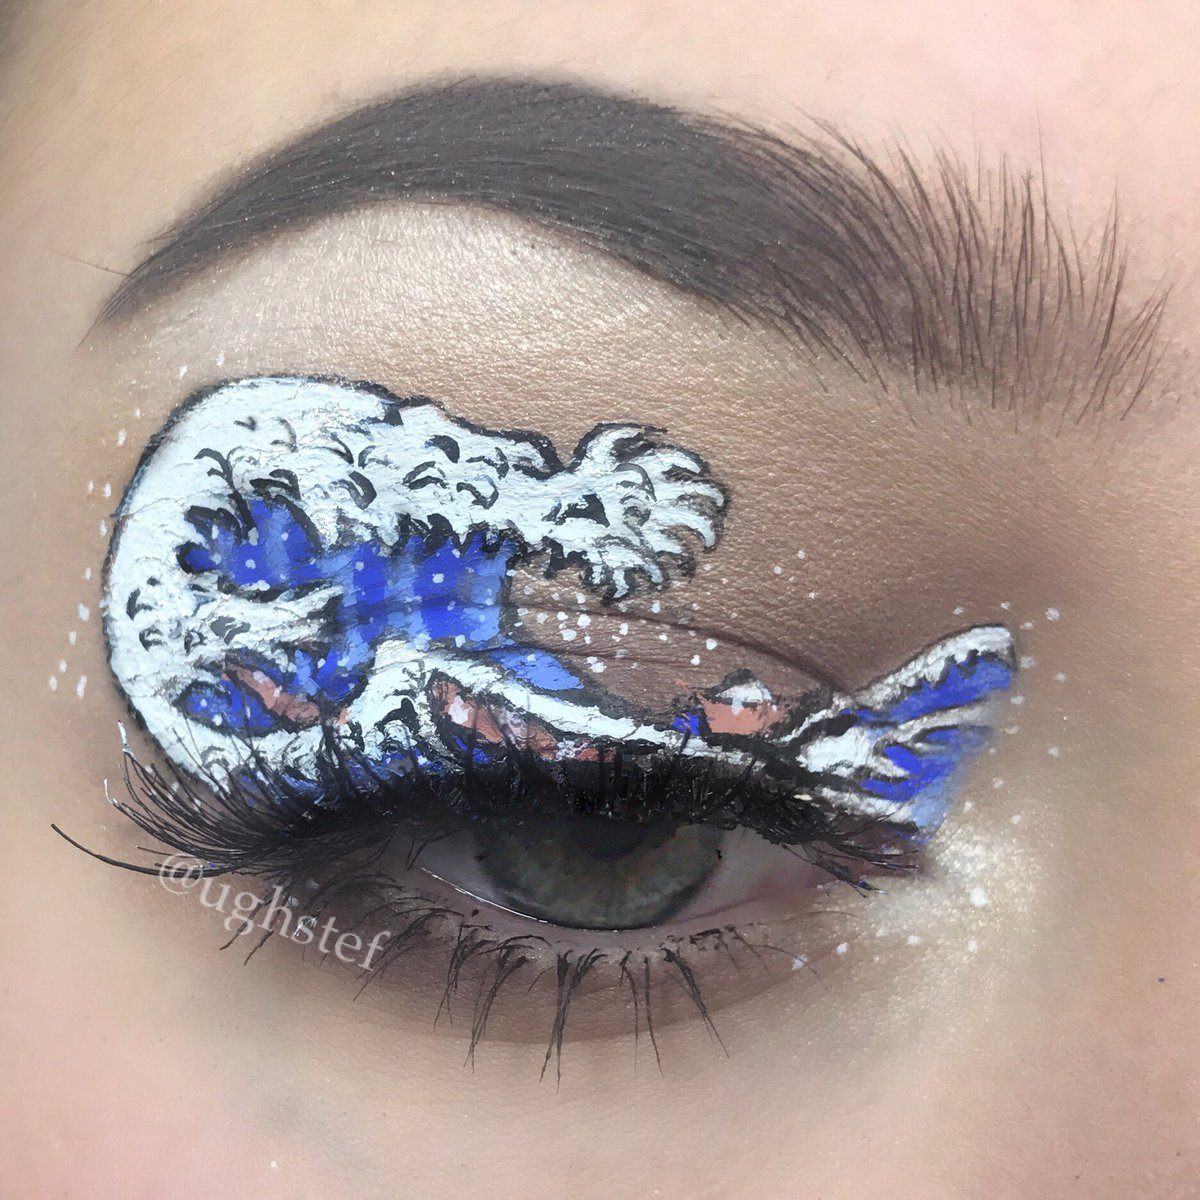 Do You Recognize These Artistic Eye Makeup Looks